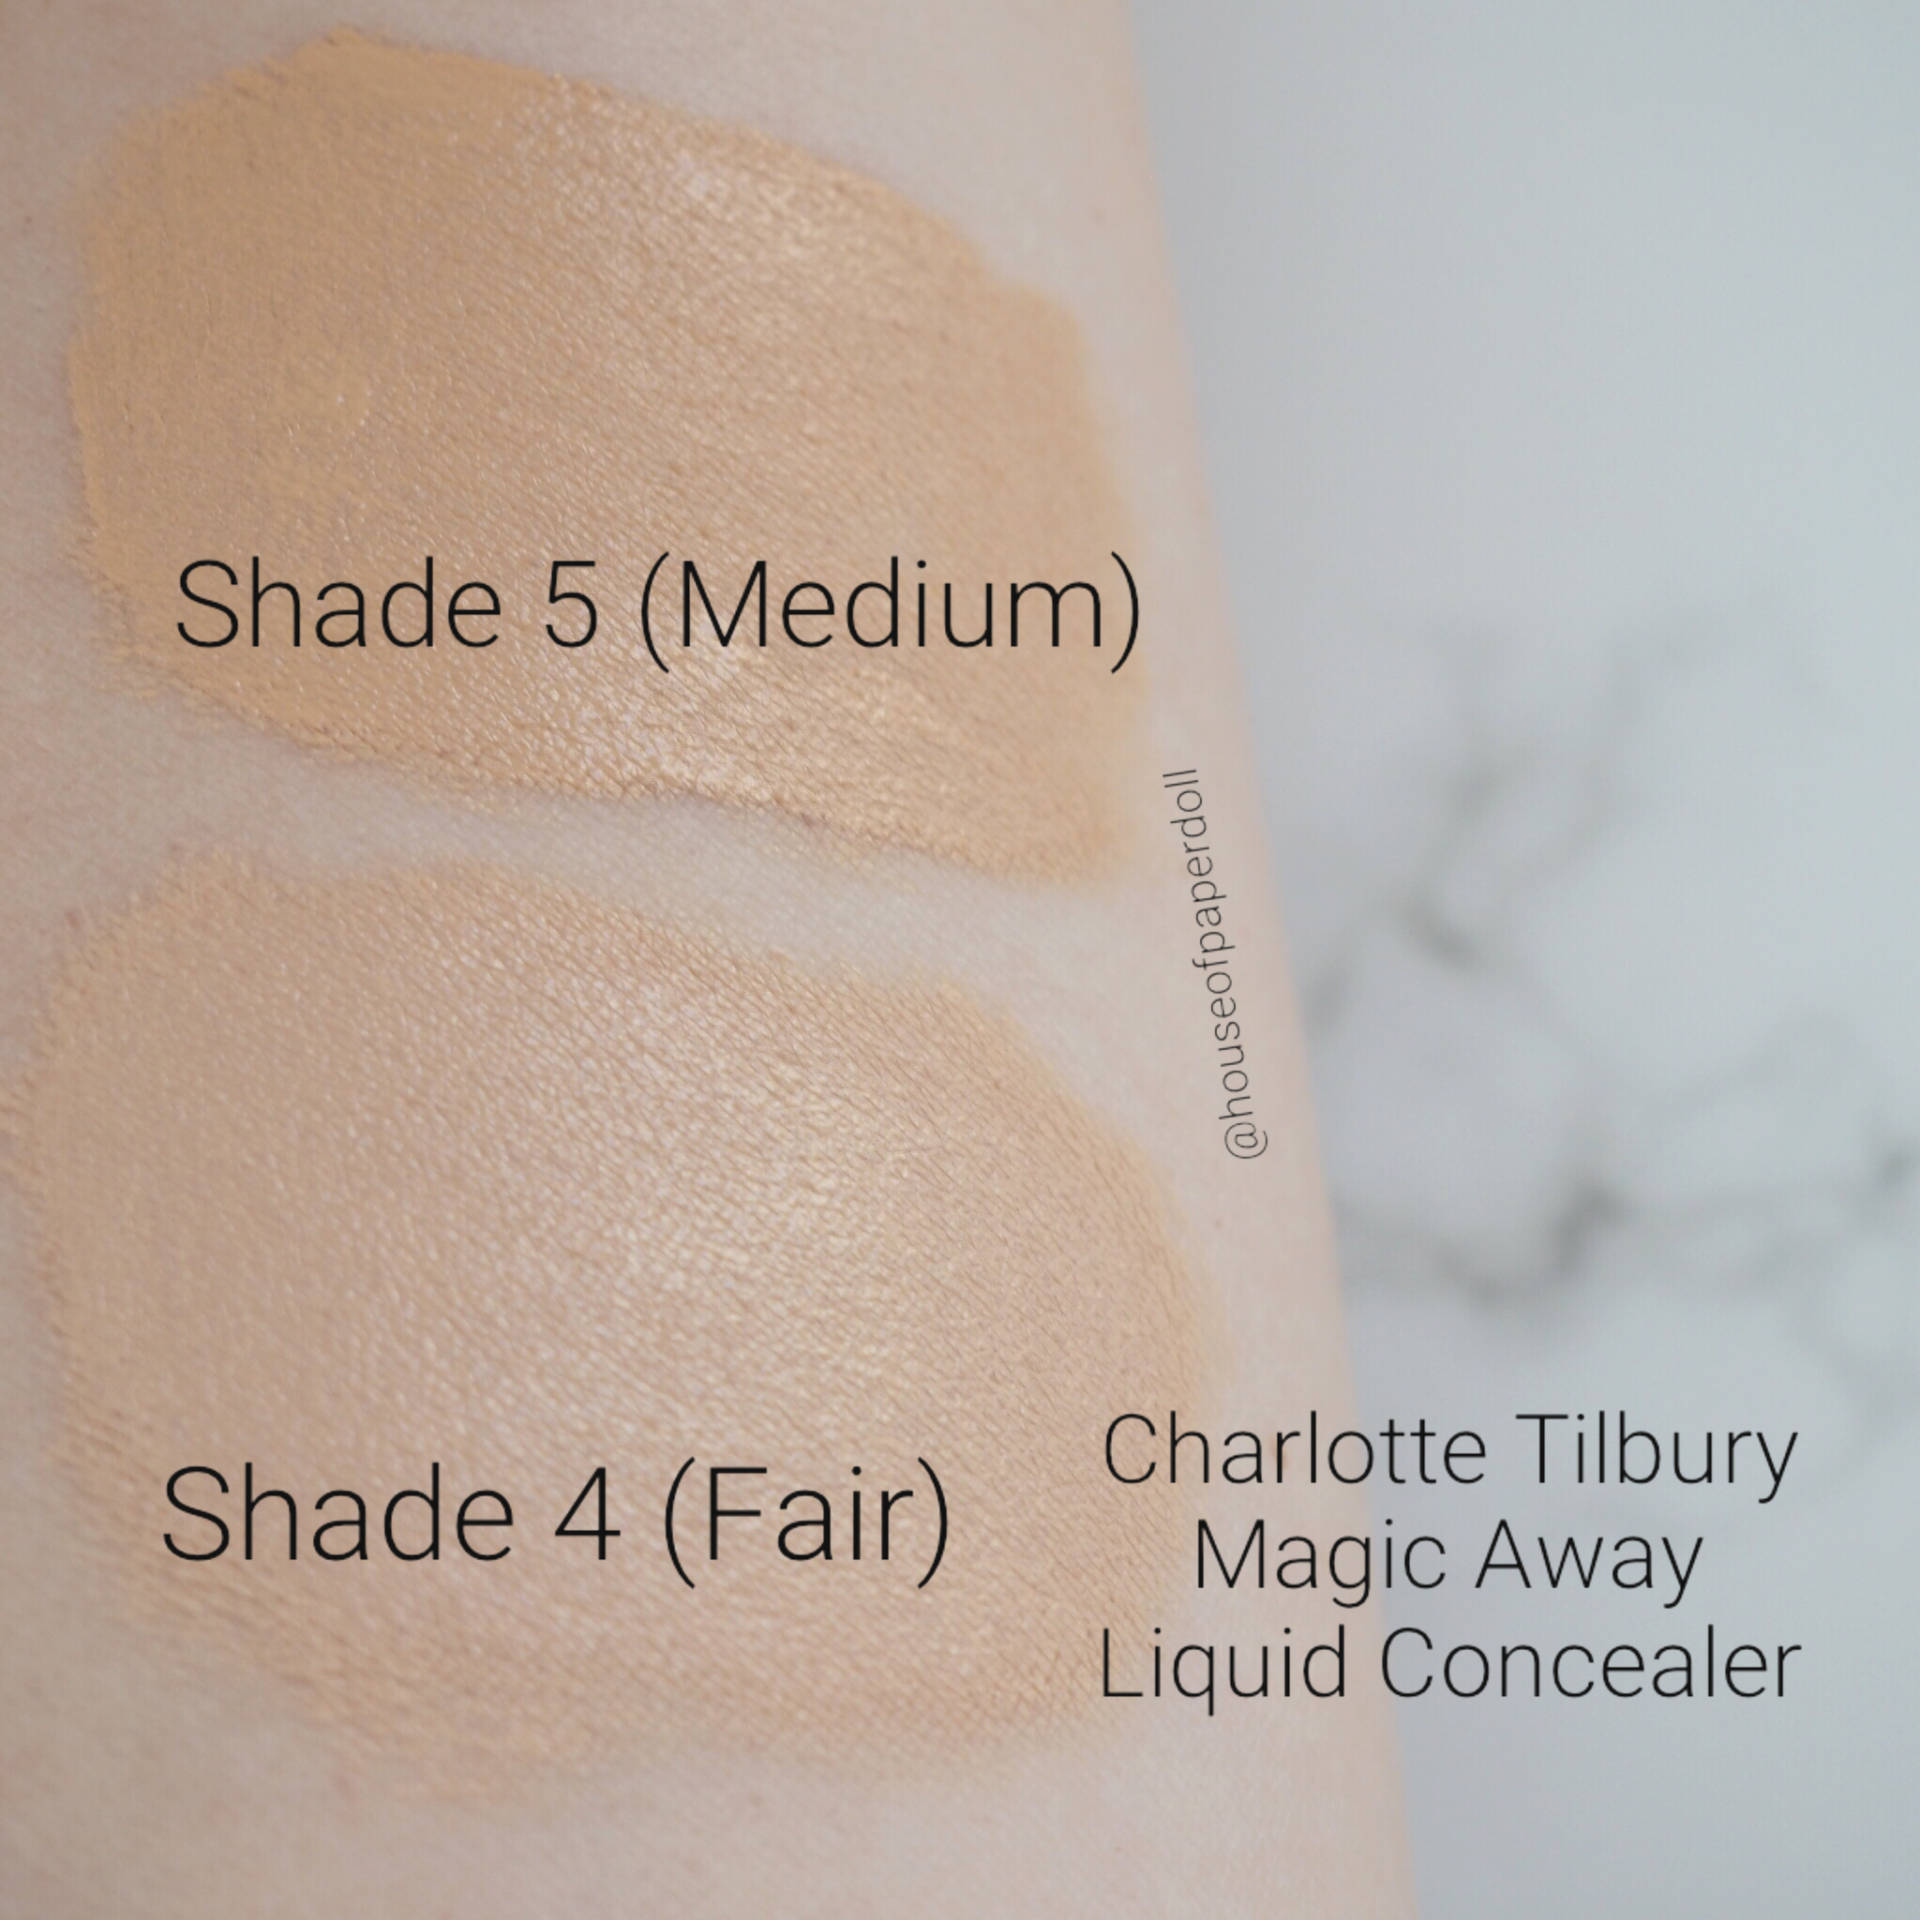 Charlotte Tilbury Magic Away Liquid Concealer Swatches